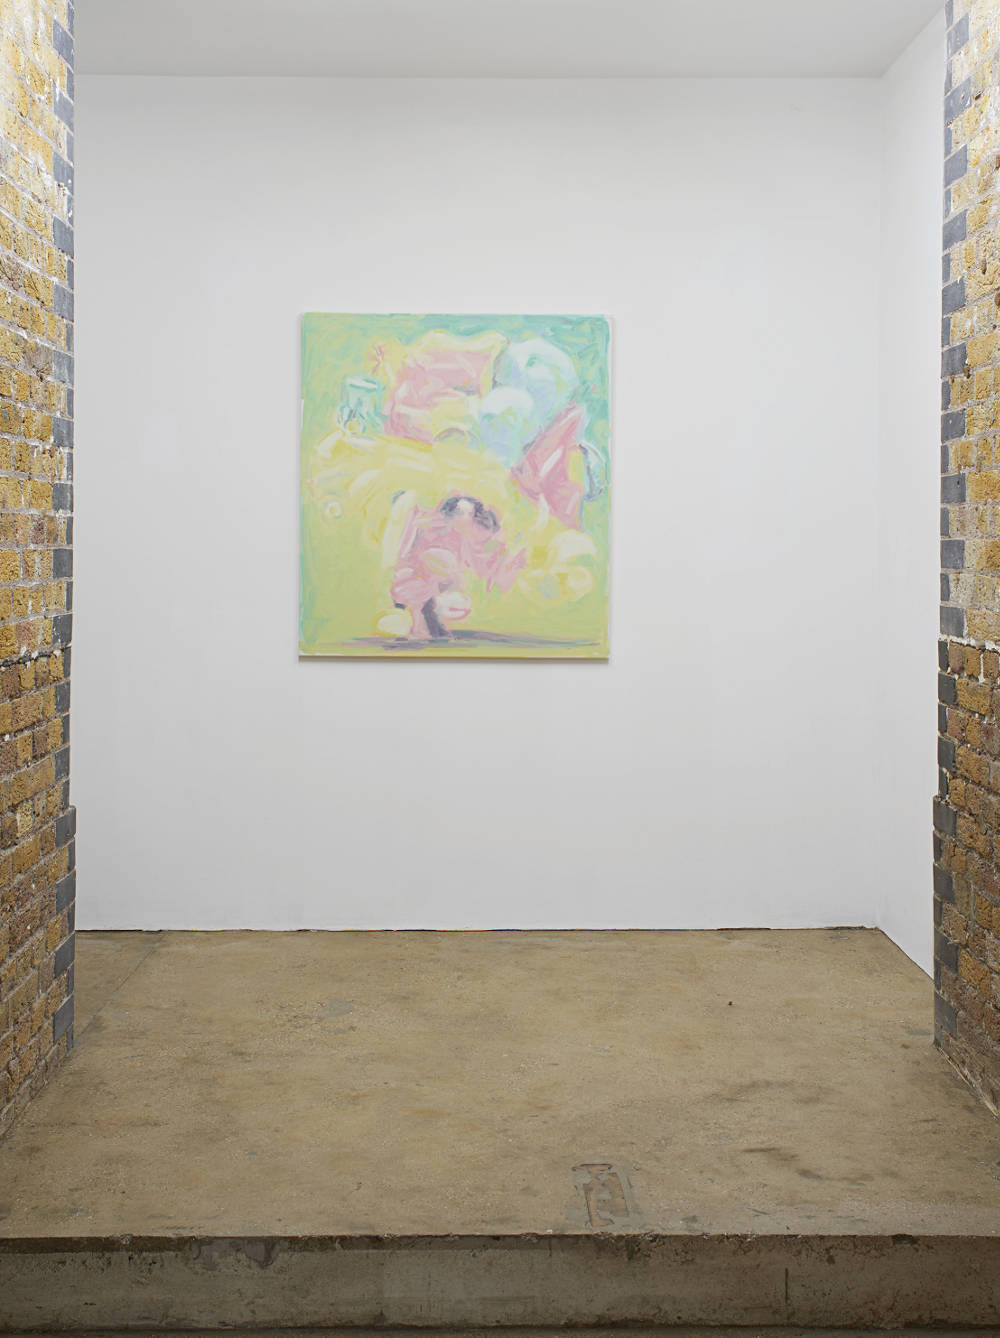 Bruno Pacheco, Puff!!! (Sissiphilous), 2018. Oil on canvas, photo: Andy Keate, courtesy the artist and Hollybush Gardens